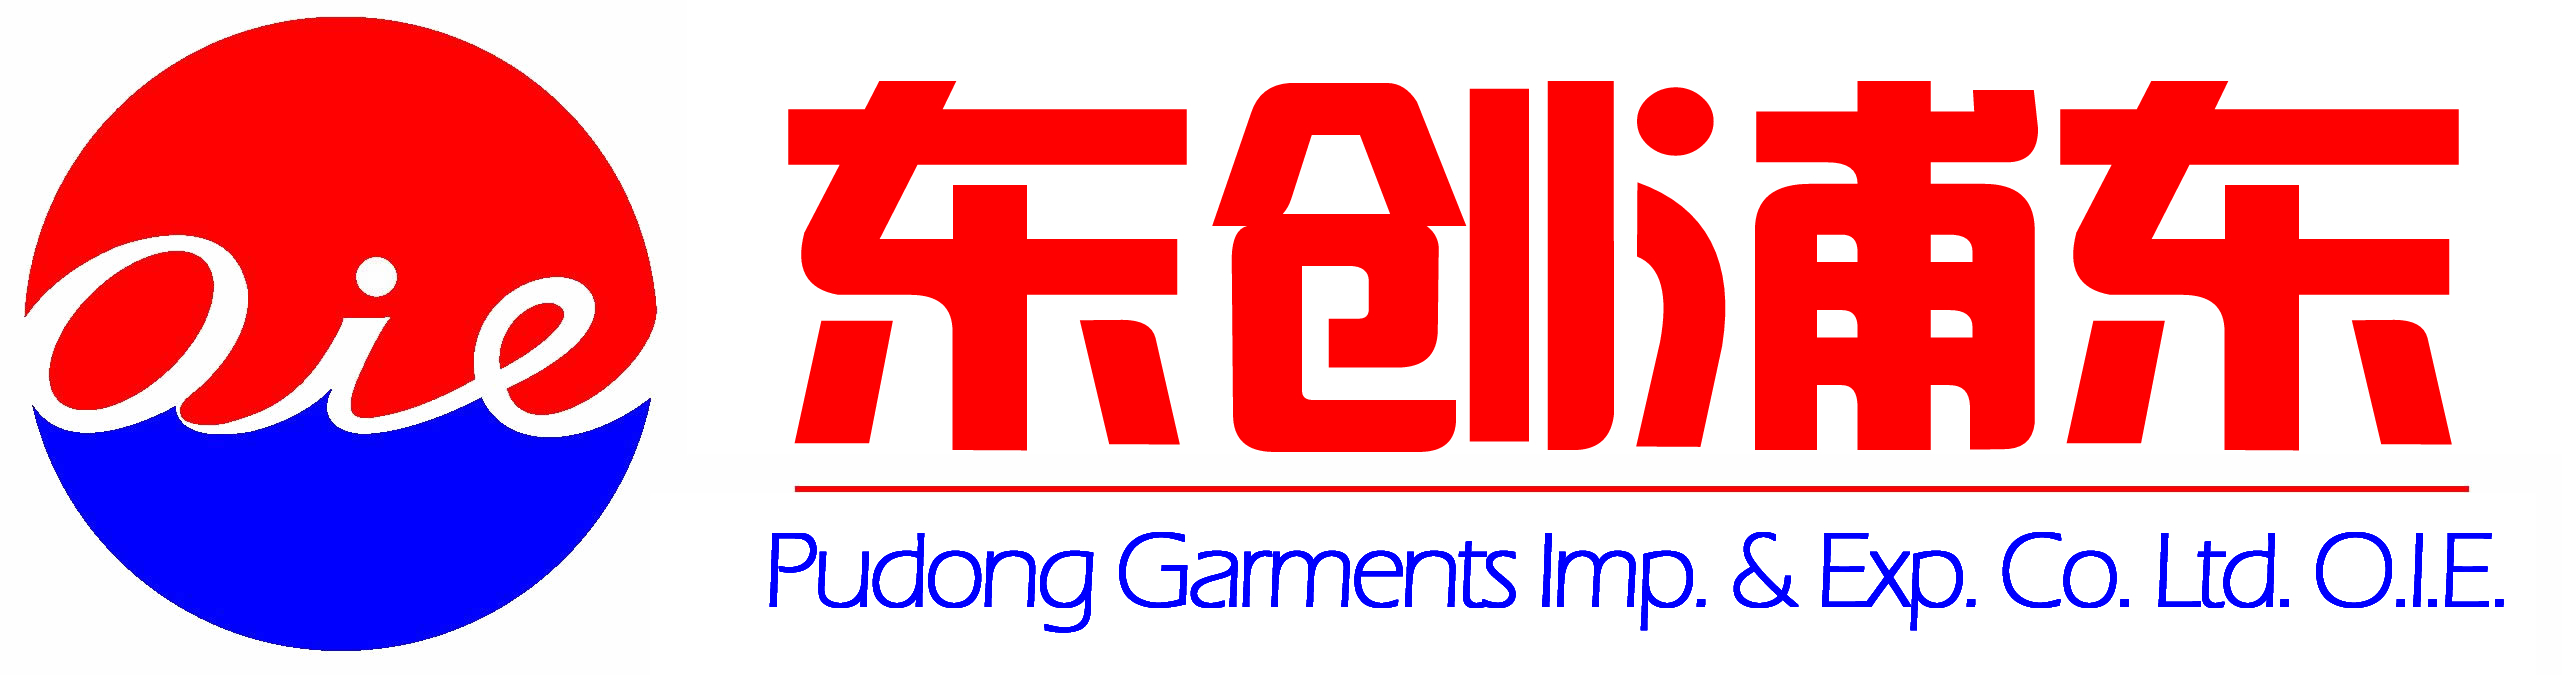 PUDONG GARMENTS IMP.& EXP.CO.,LTD.OIE.